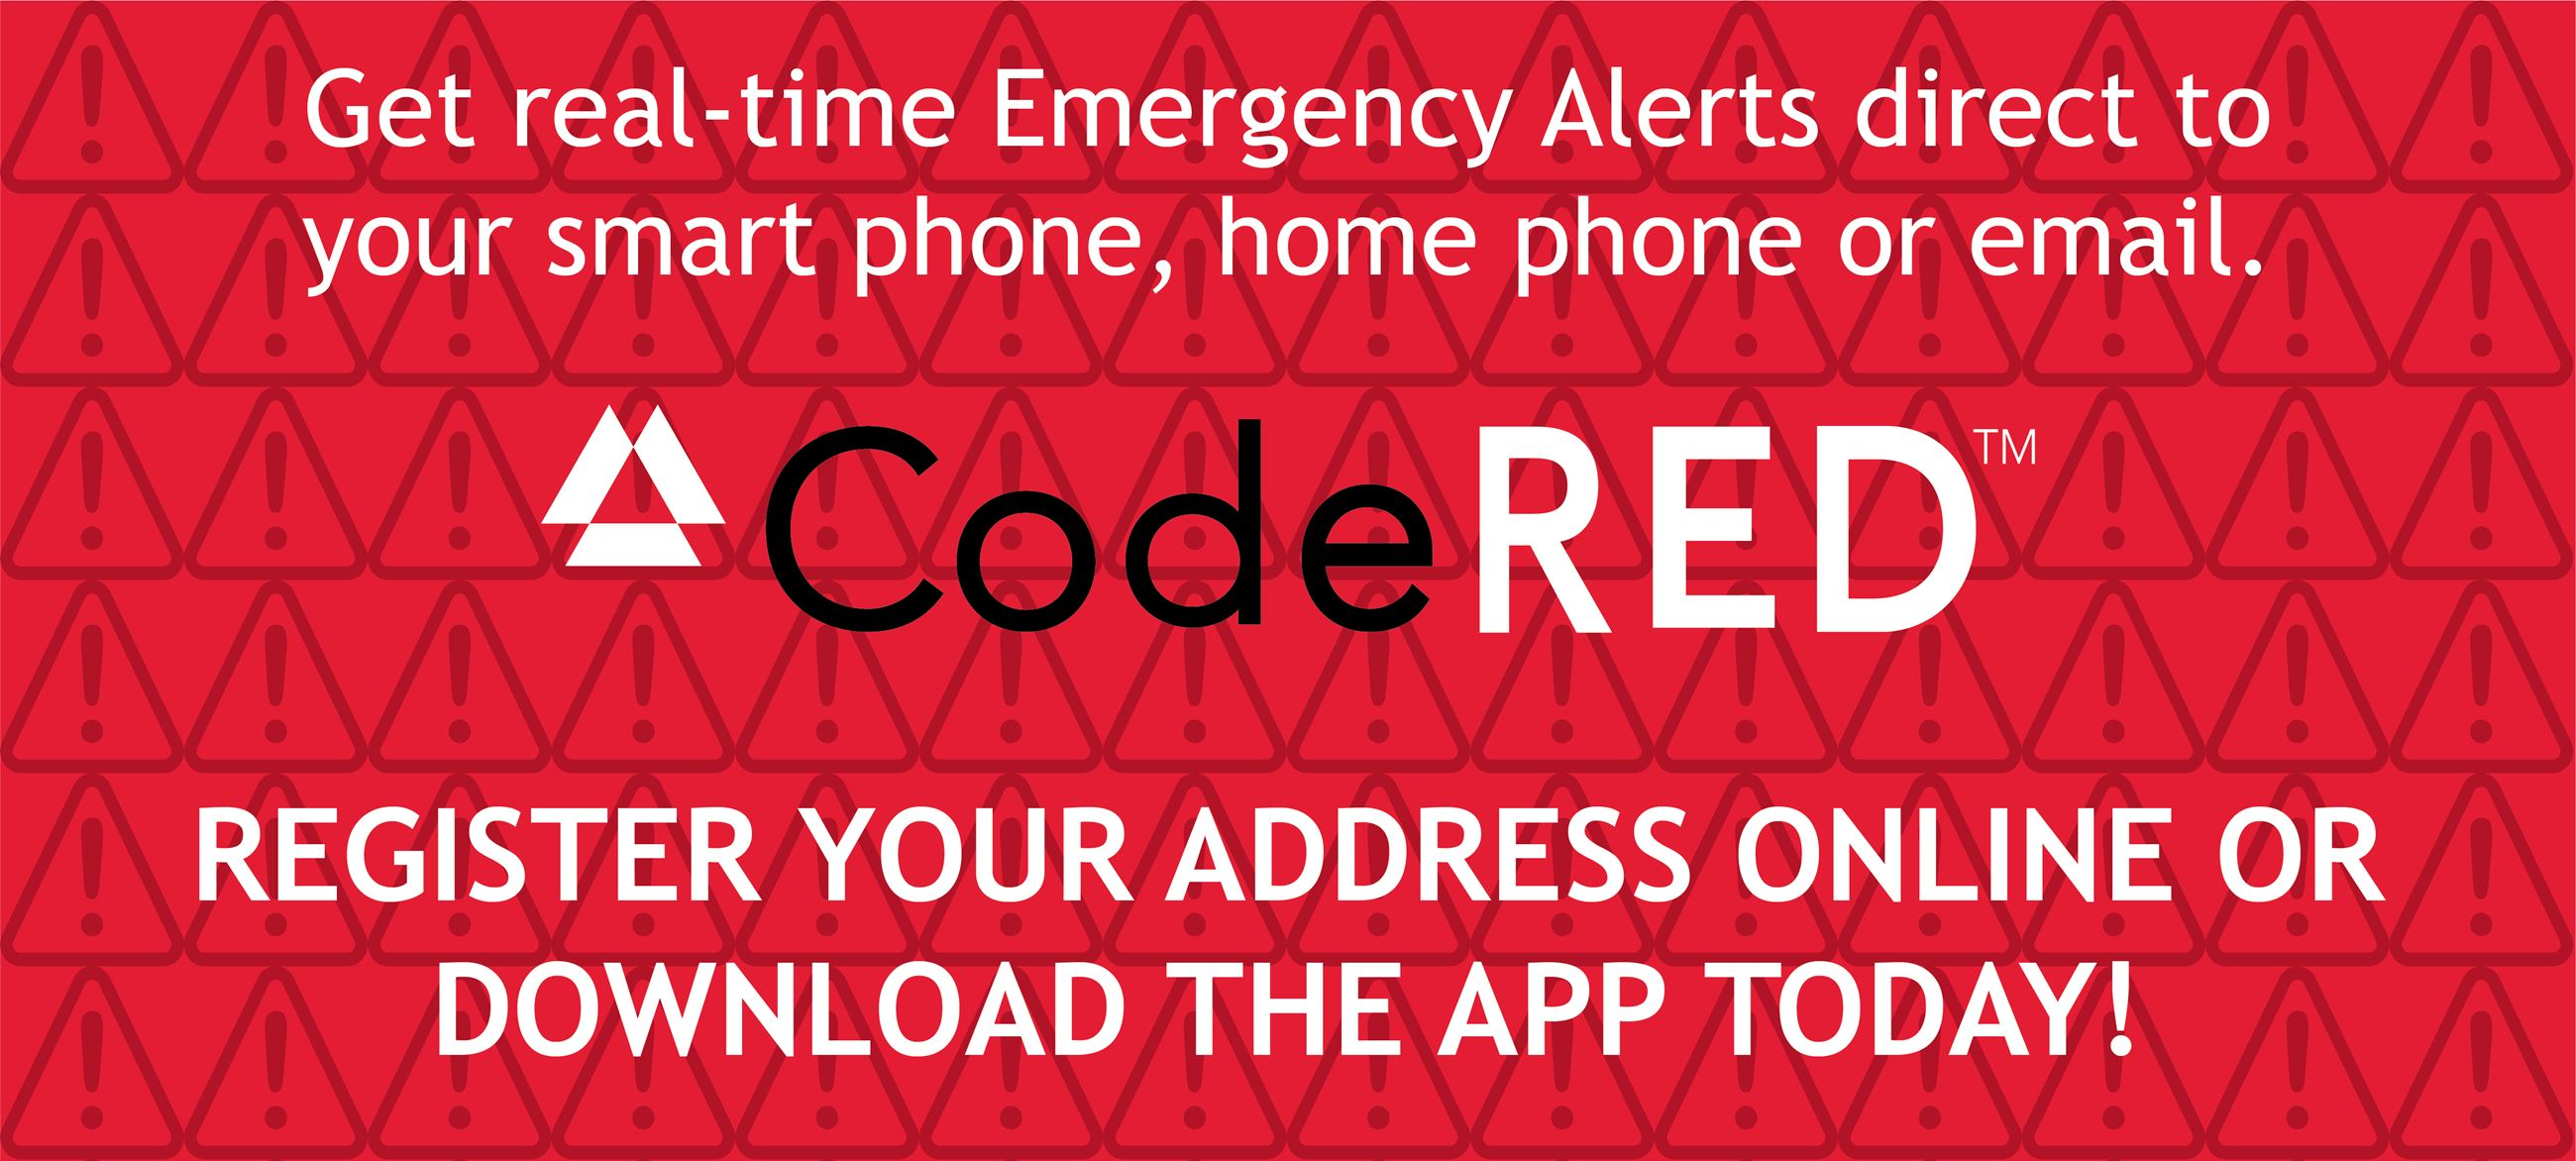 Graphic encouraging residents to sign up for CodeRED online or via their app